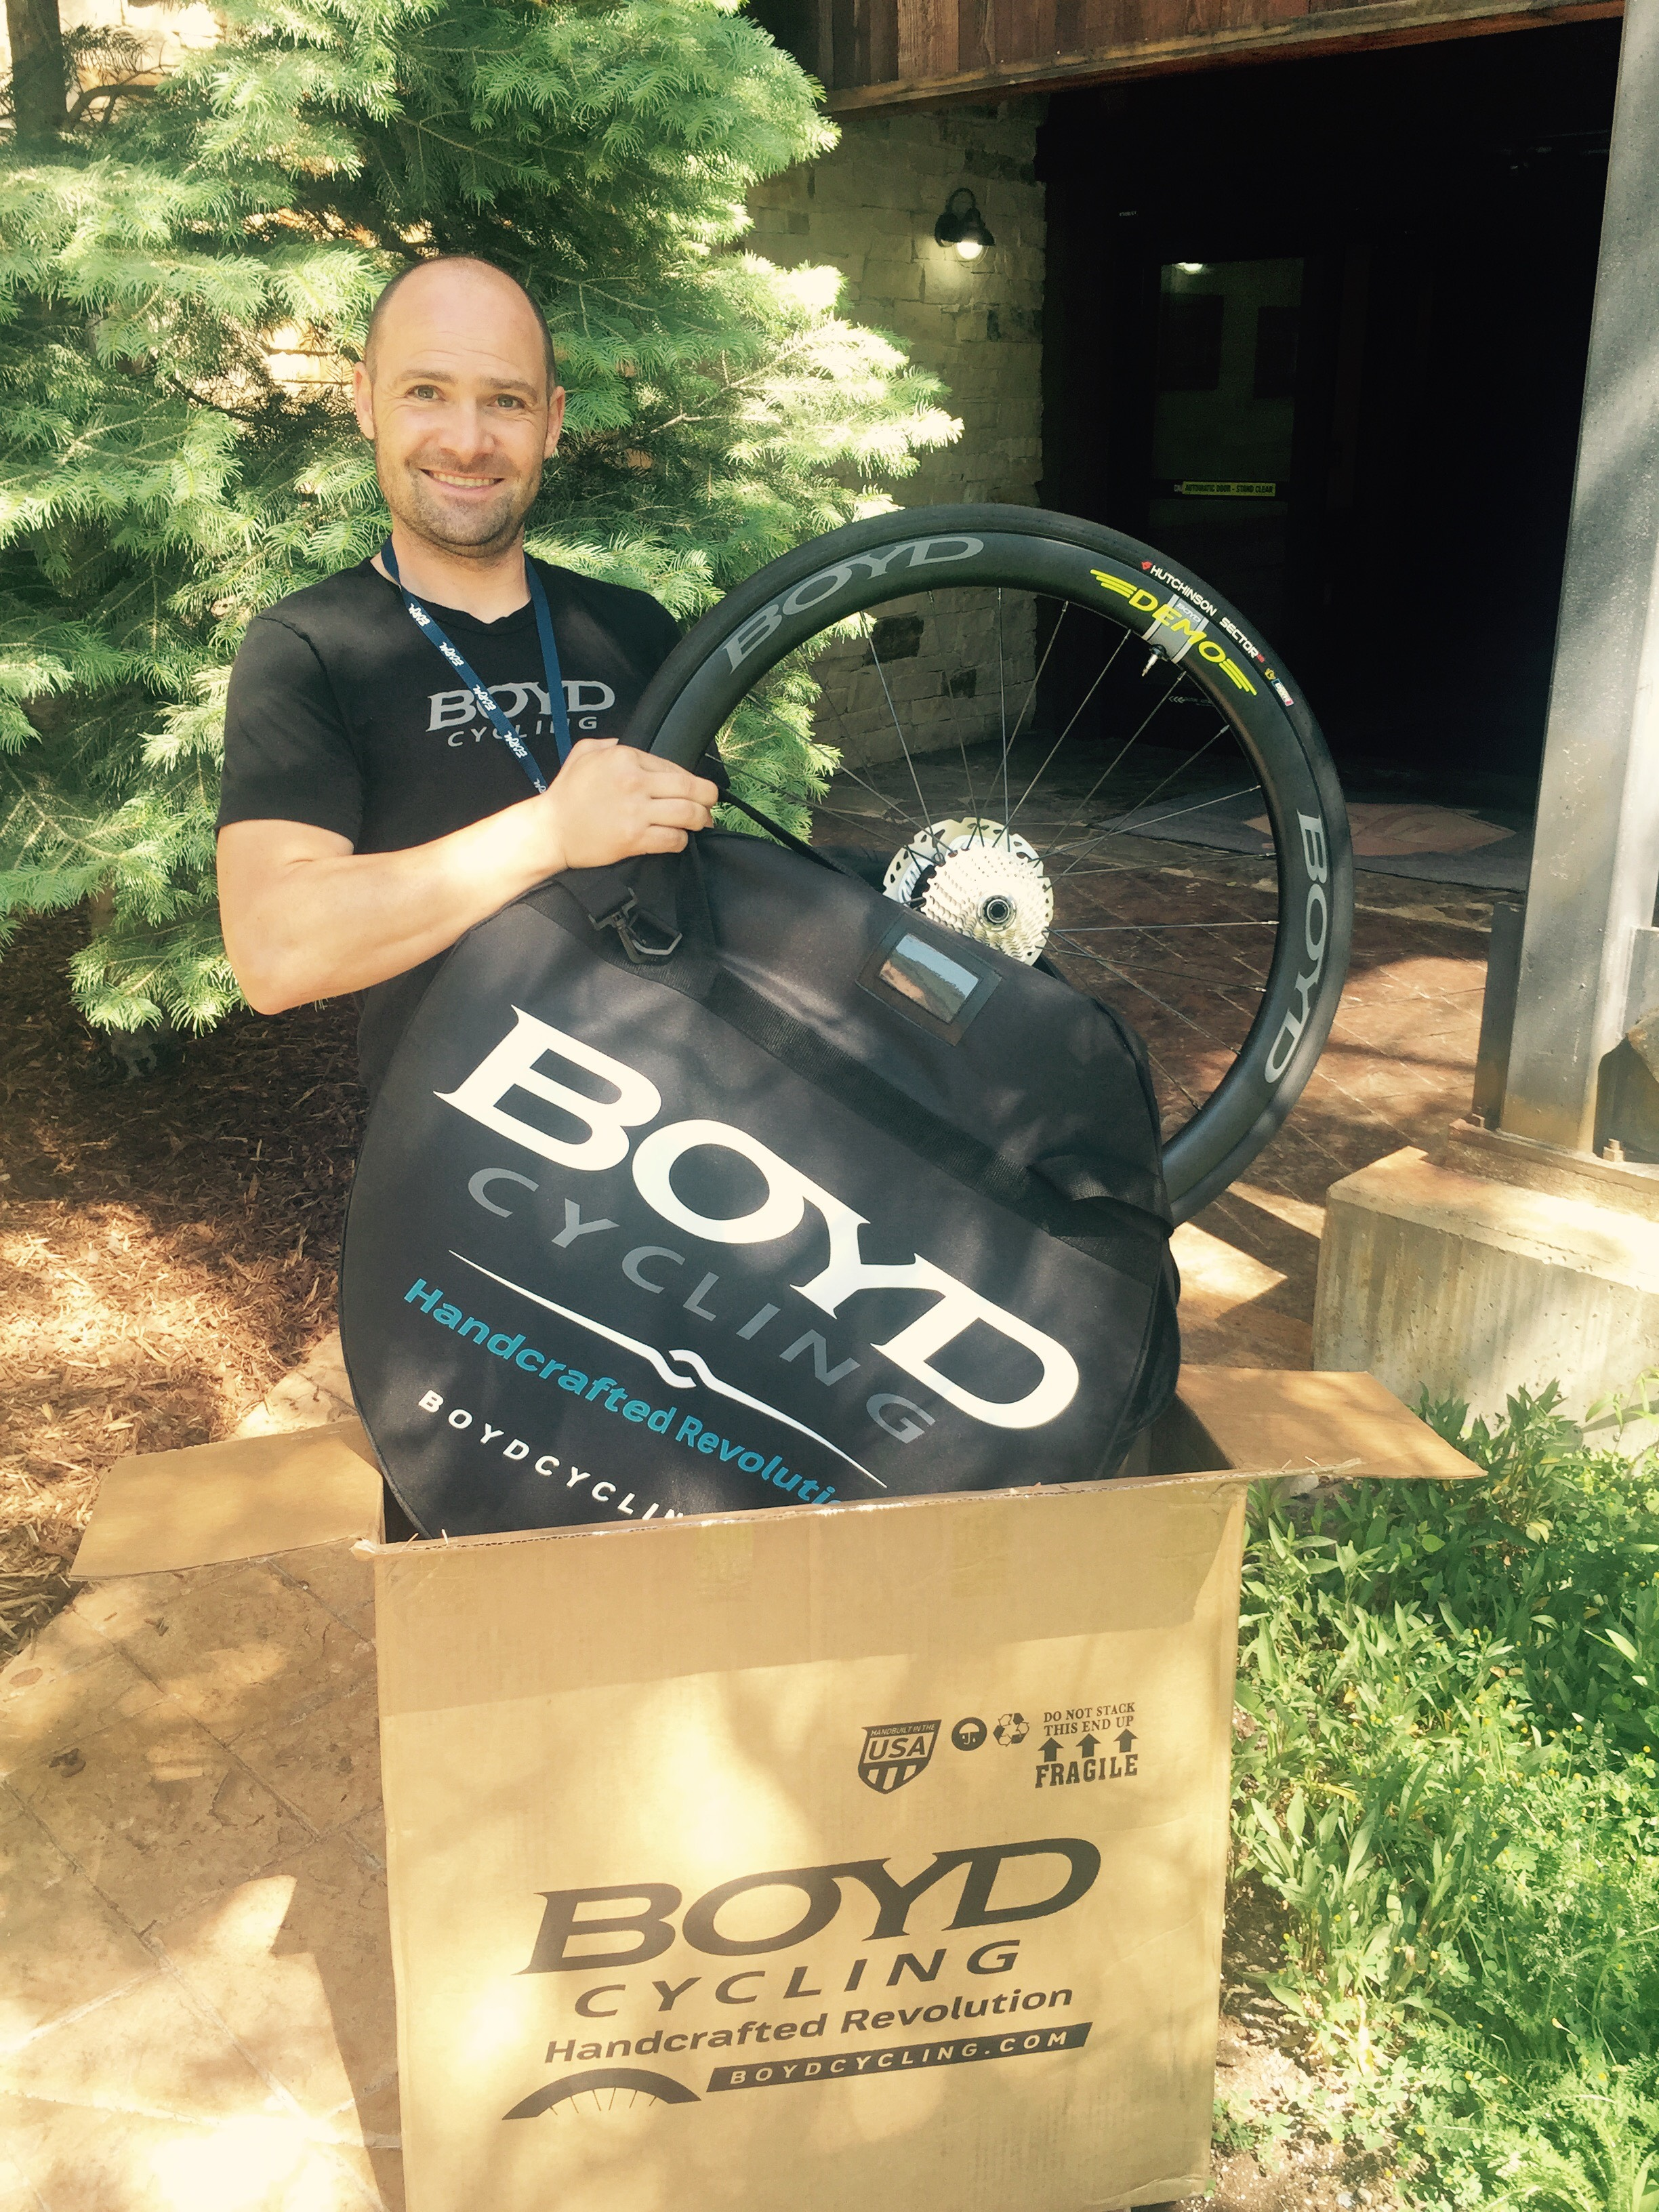 Boyd Johnson of South Carolina wheel maker Boyd Cycling is preparing to roll out a new Ready to Ride program, where both dealers and consumers can order complete sets of wheels with tires, tubes or tubeless setup, cassette and disc brake rotors already installed and, well … ready to ride. Rollout is targeted for Aug. 1. Wheels will ship in a double wheel bag. Tire options will include Schwalbe for road, Hutchinson for cyclocross, and Maxxis for mountain.